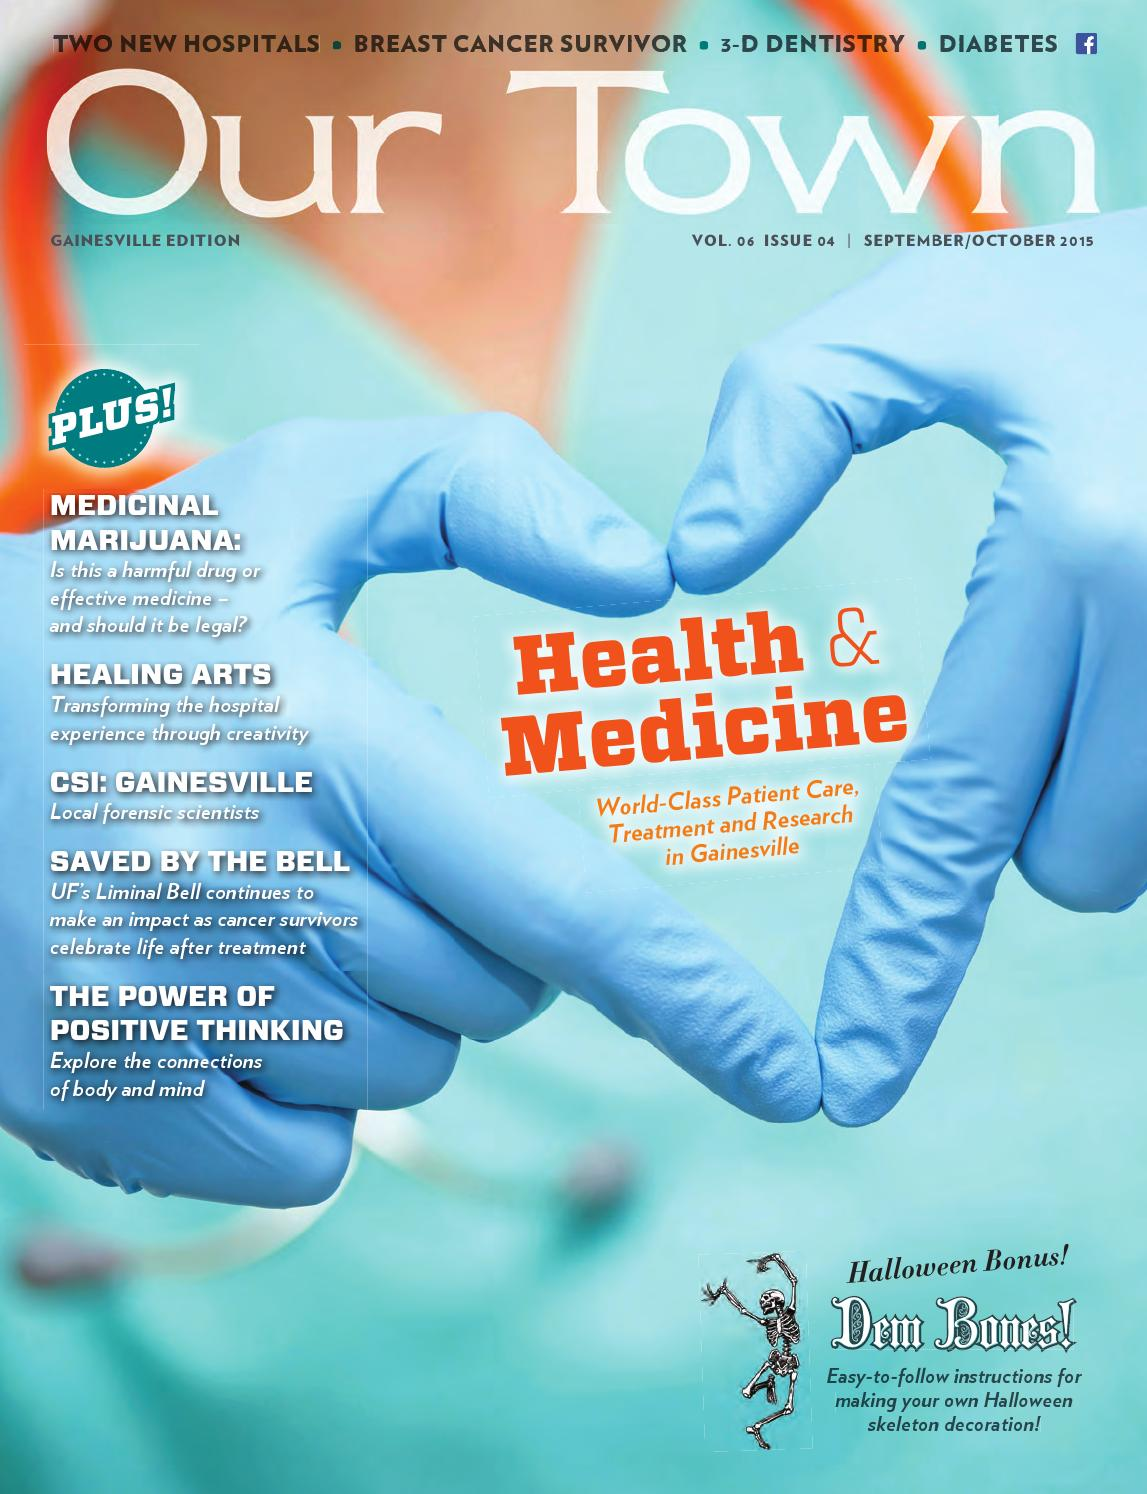 Our Town 2015 SEP-OCT (Gainesville) by Tower Publications - issuu